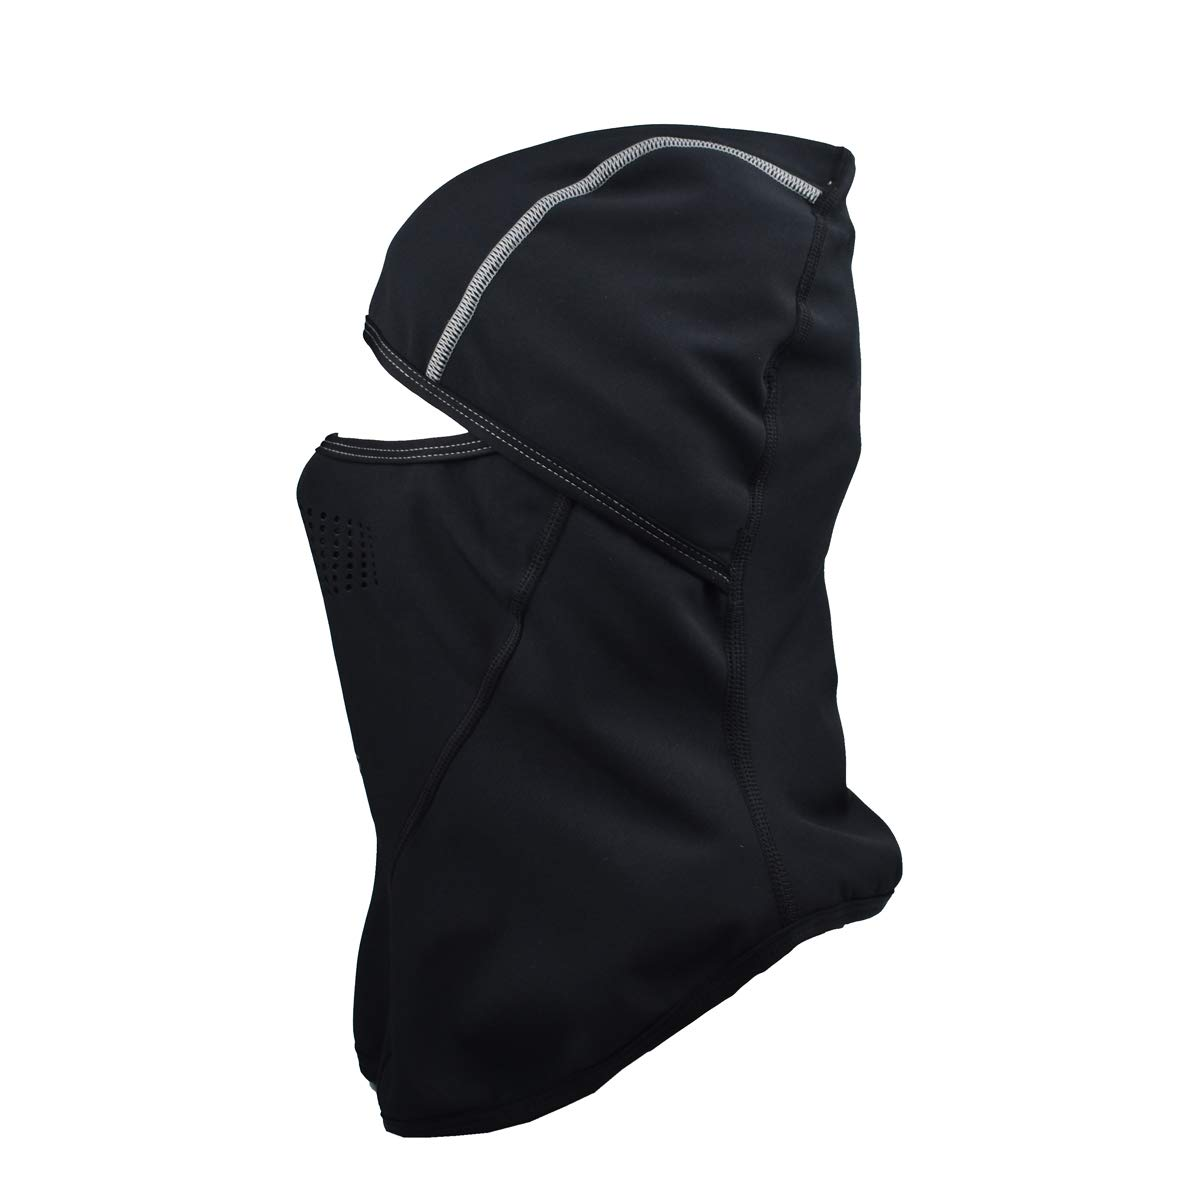 Lening Q20MSK CHCYCLE Motorcycle Windproof Balaclava Face Mask Winter Sports Full Face Mask HKCK